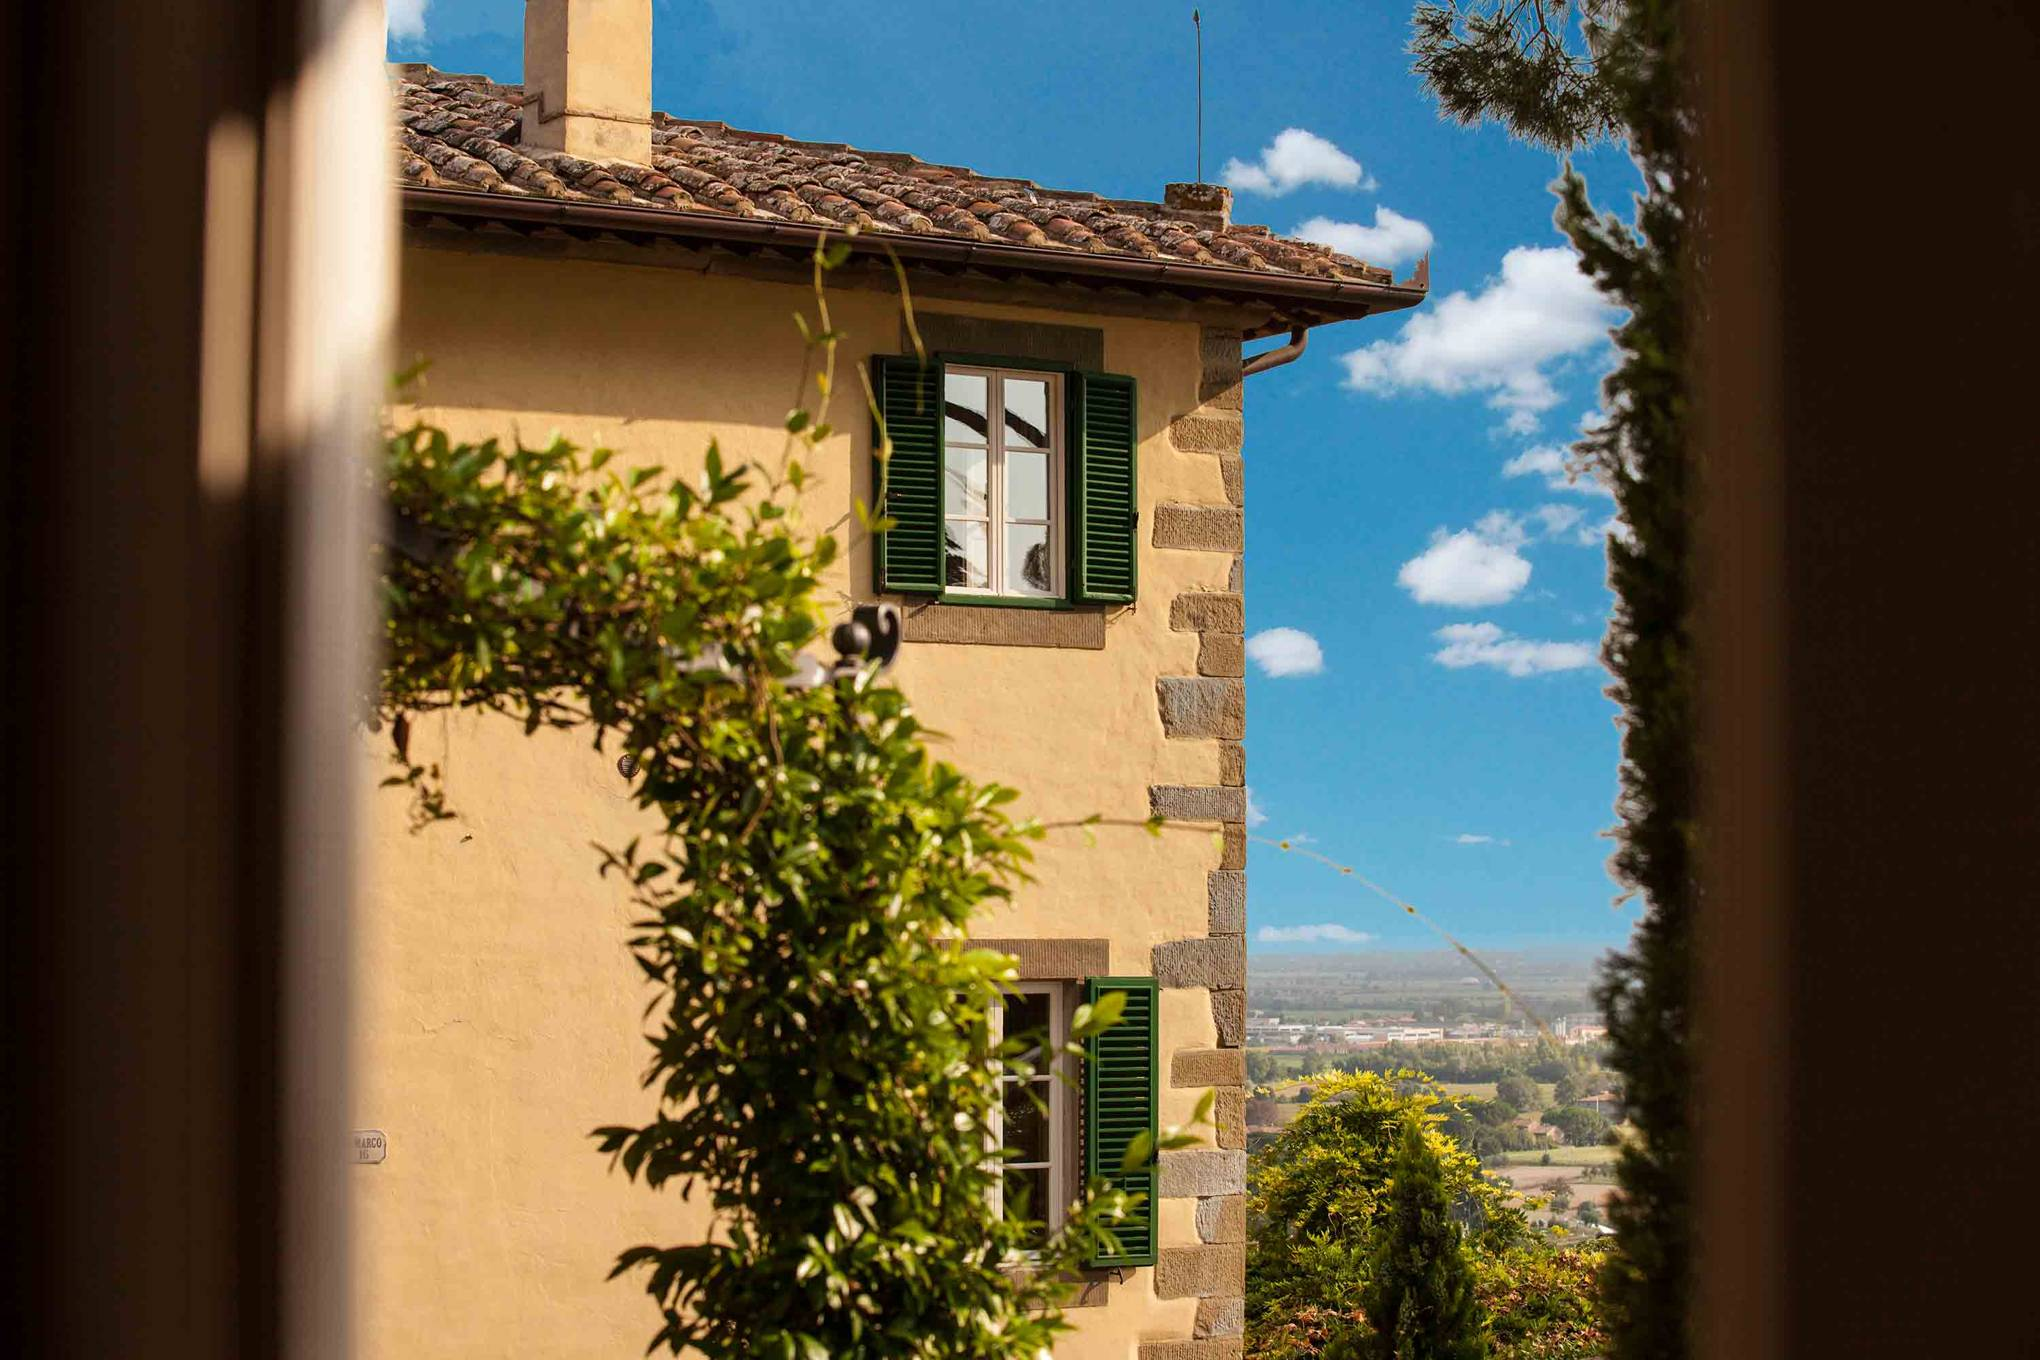 How to rent the villa from Under the Tuscan Sun | CN Traveller